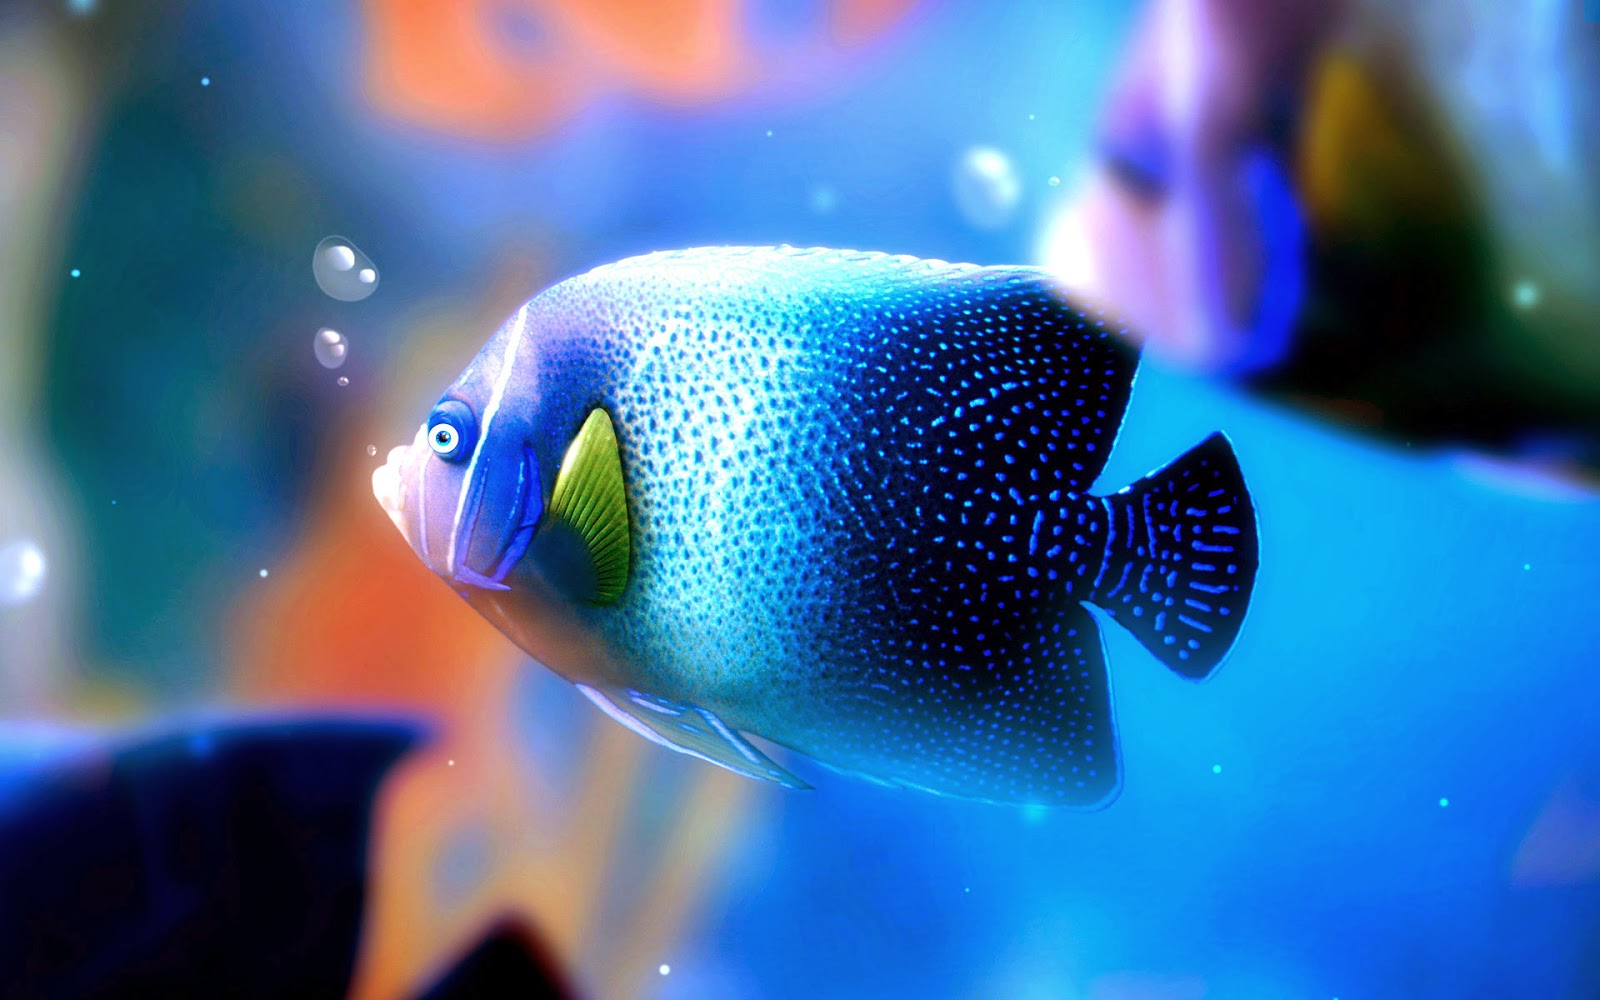 blue fish wallpaper backgrounds - photo #3